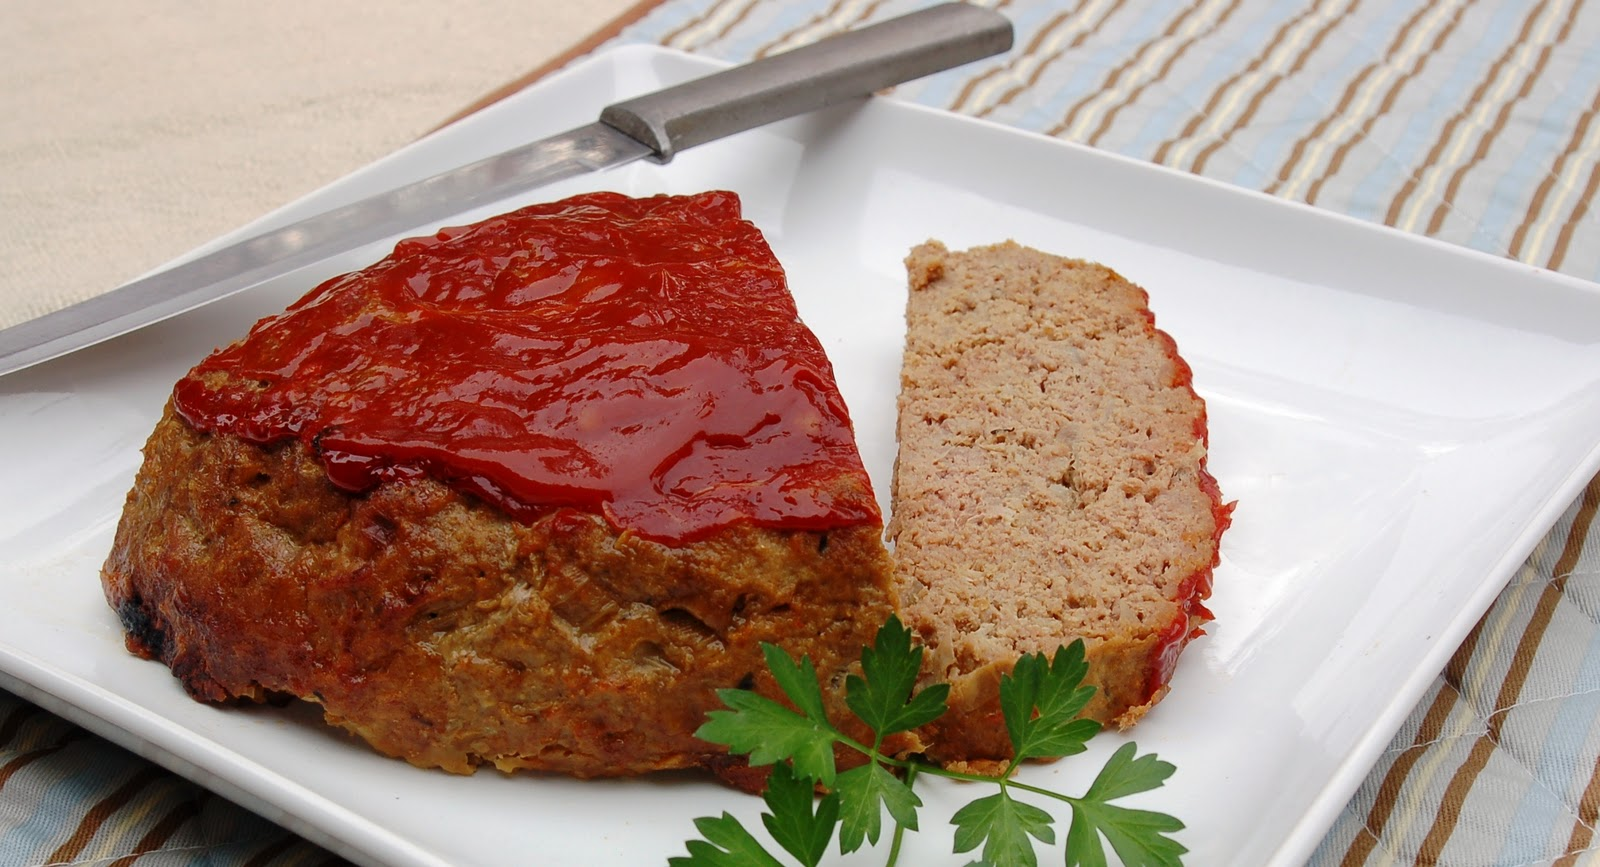 Another Marvelous Meal: The Best Turkey Meatloaf